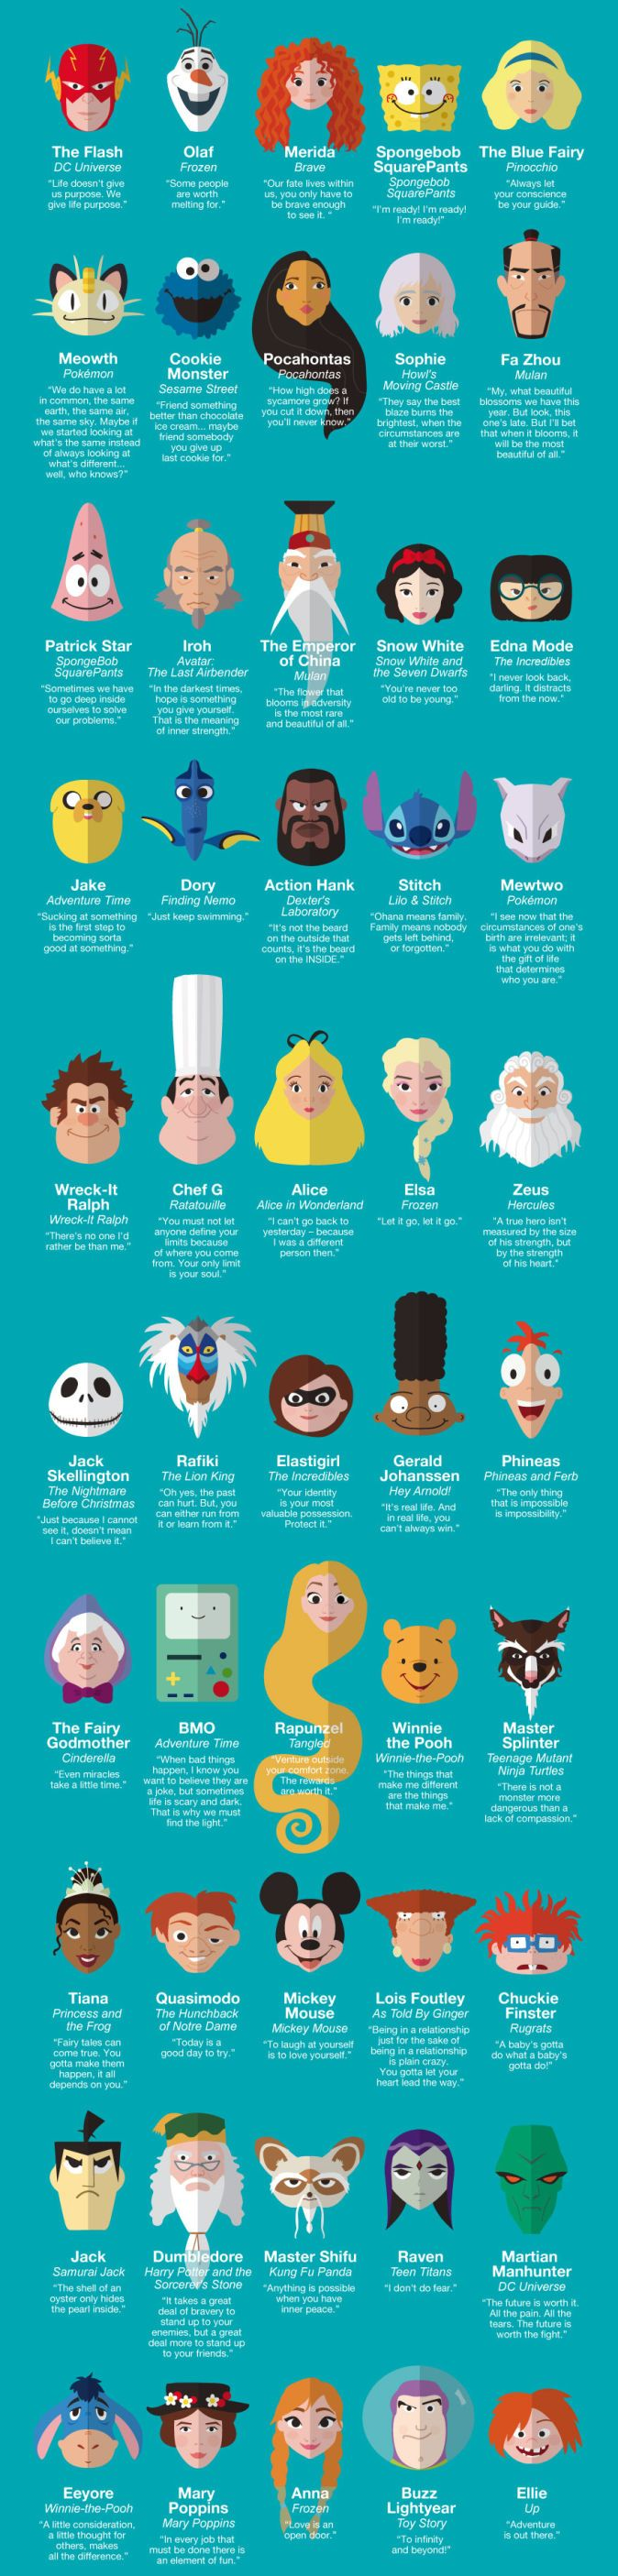 50 Inspiring Life Quotes from Famous Cartoon Characters | Blaze Press